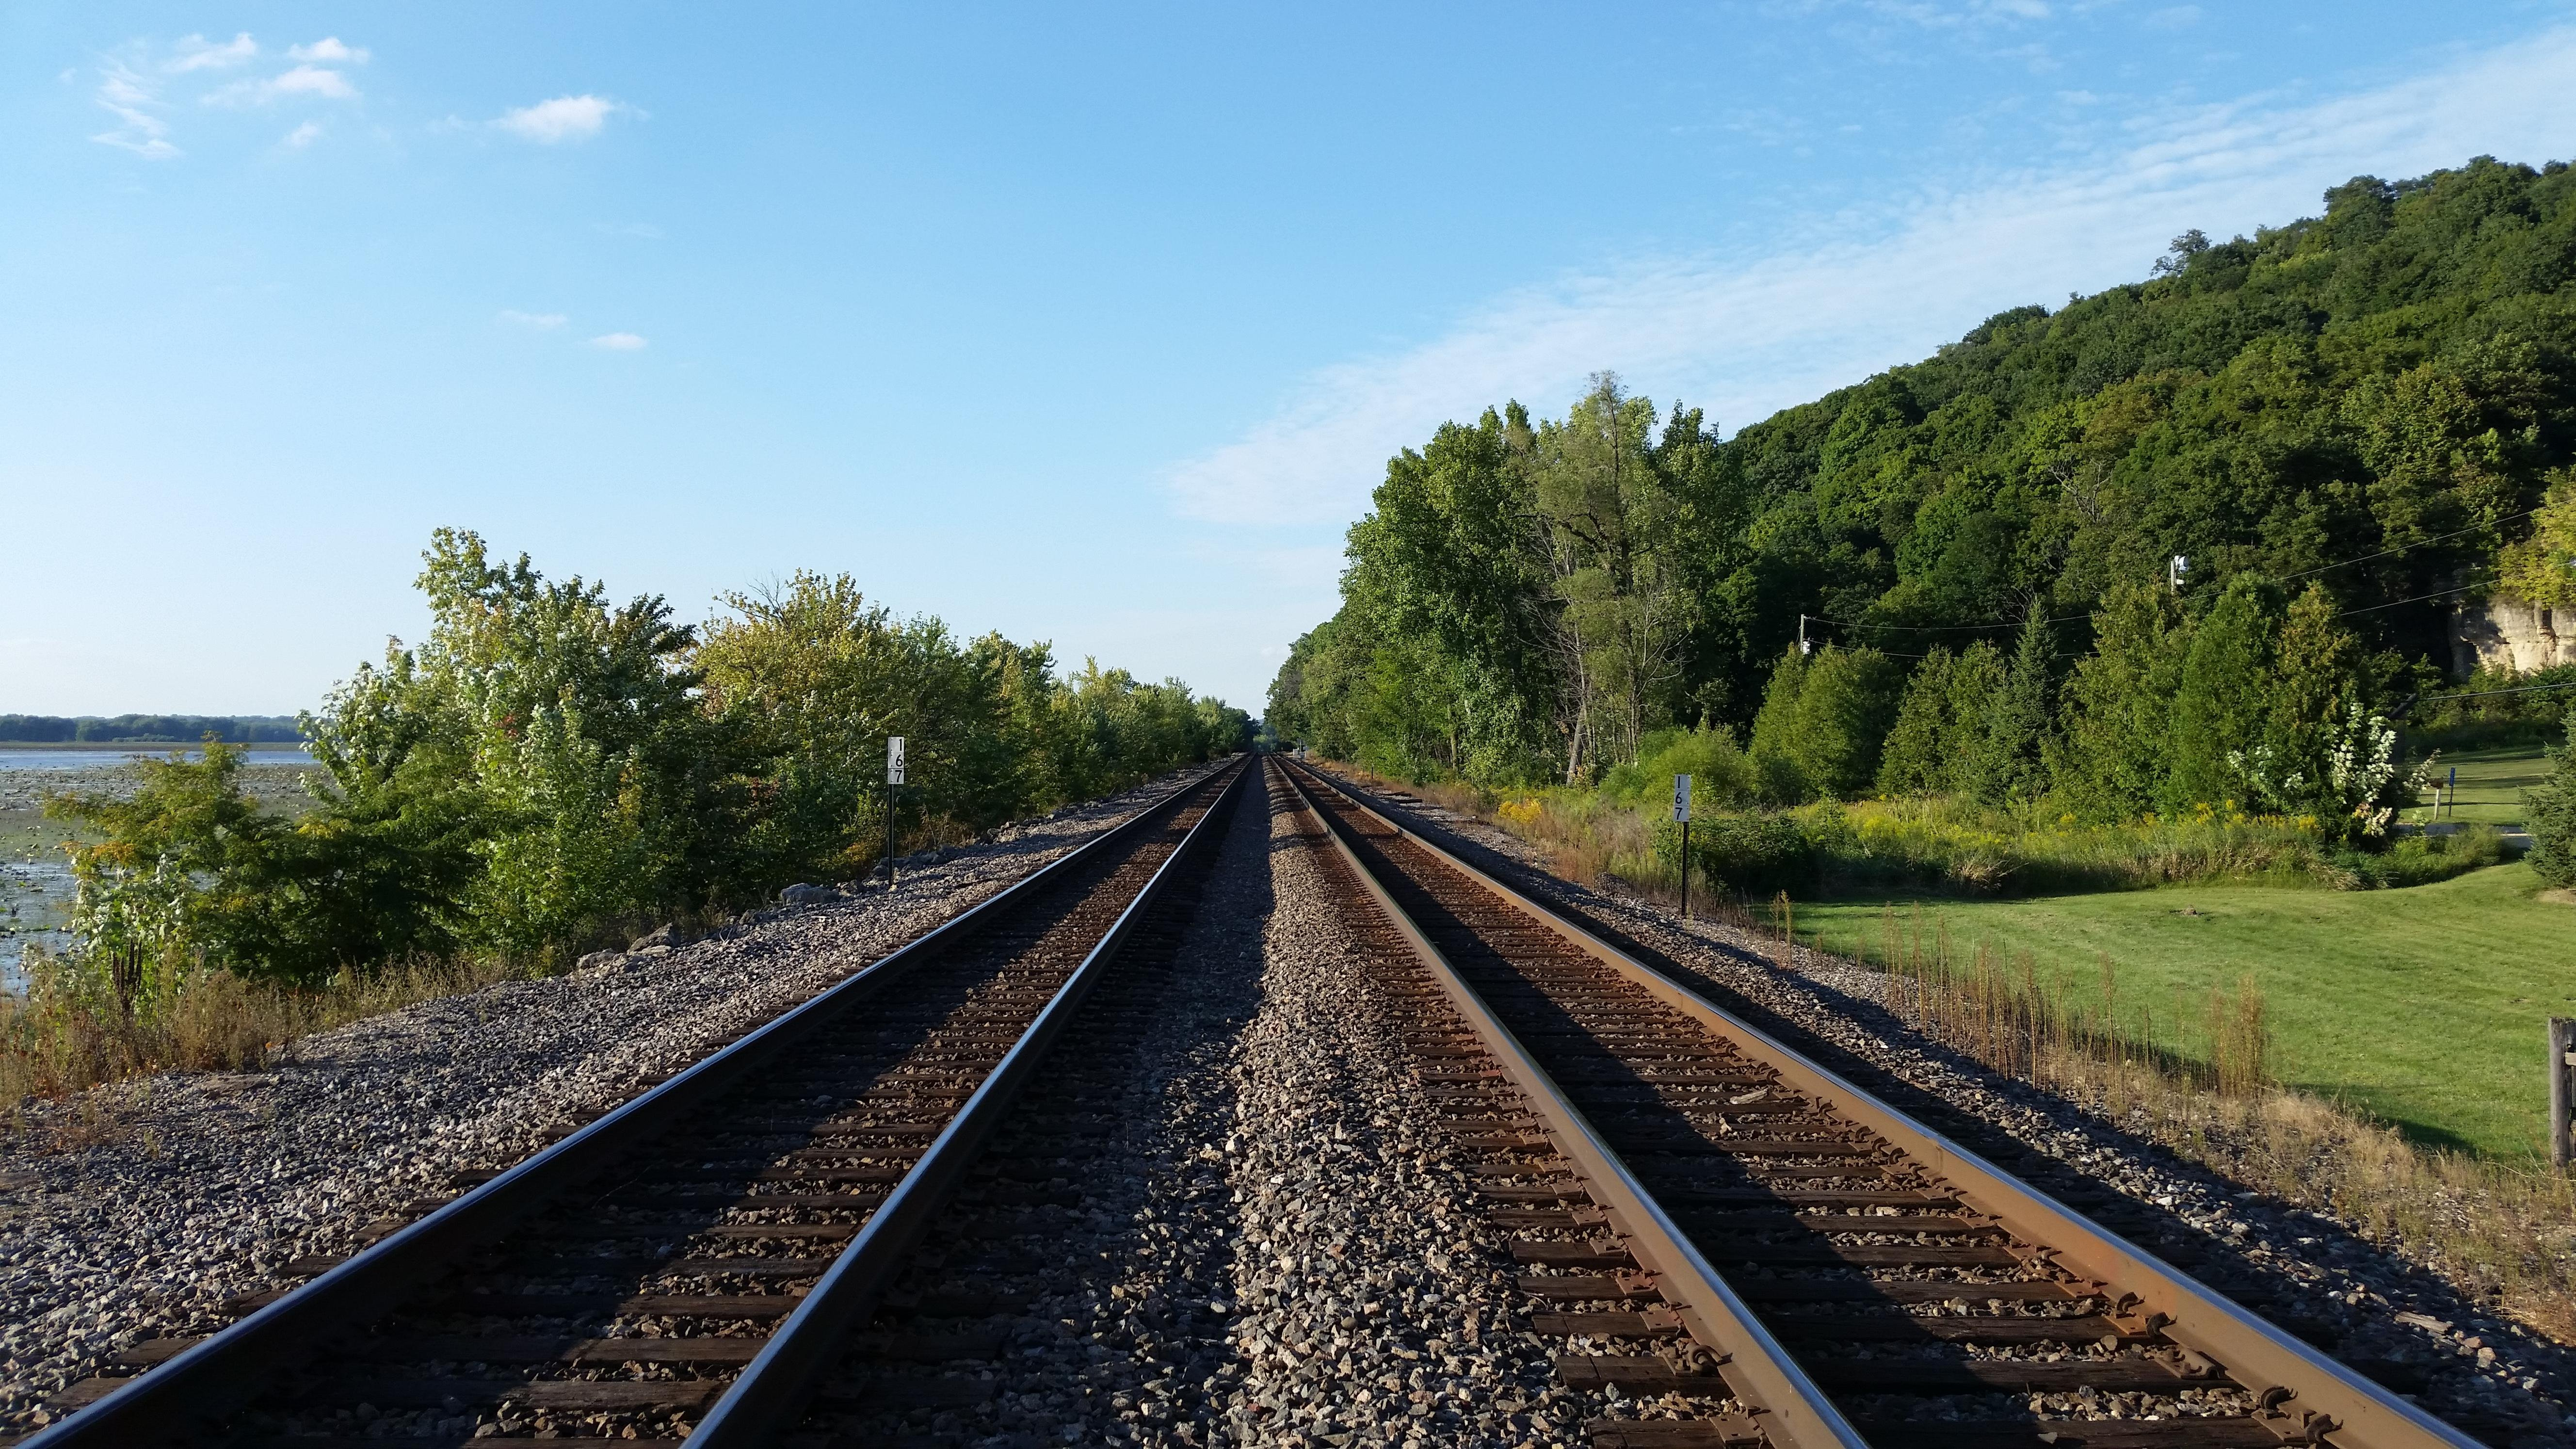 Railroad Nature Shot wallpaper